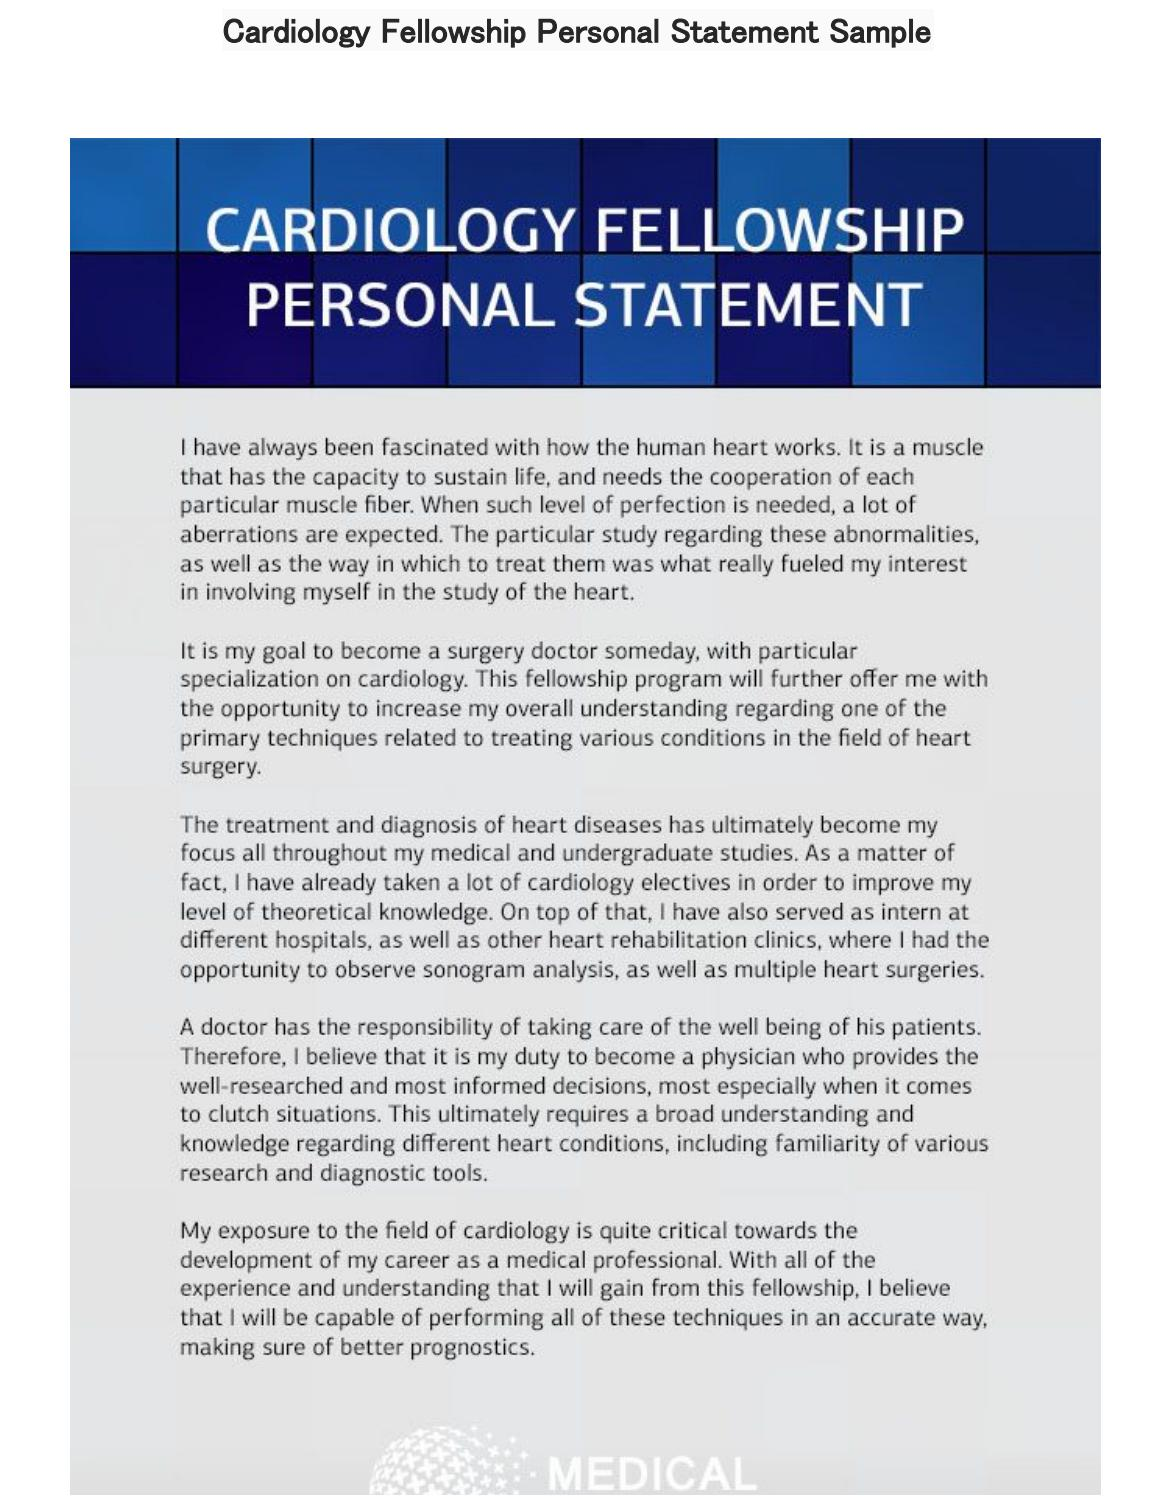 Cardiology Fellowship Personal Statement Sample by Medical